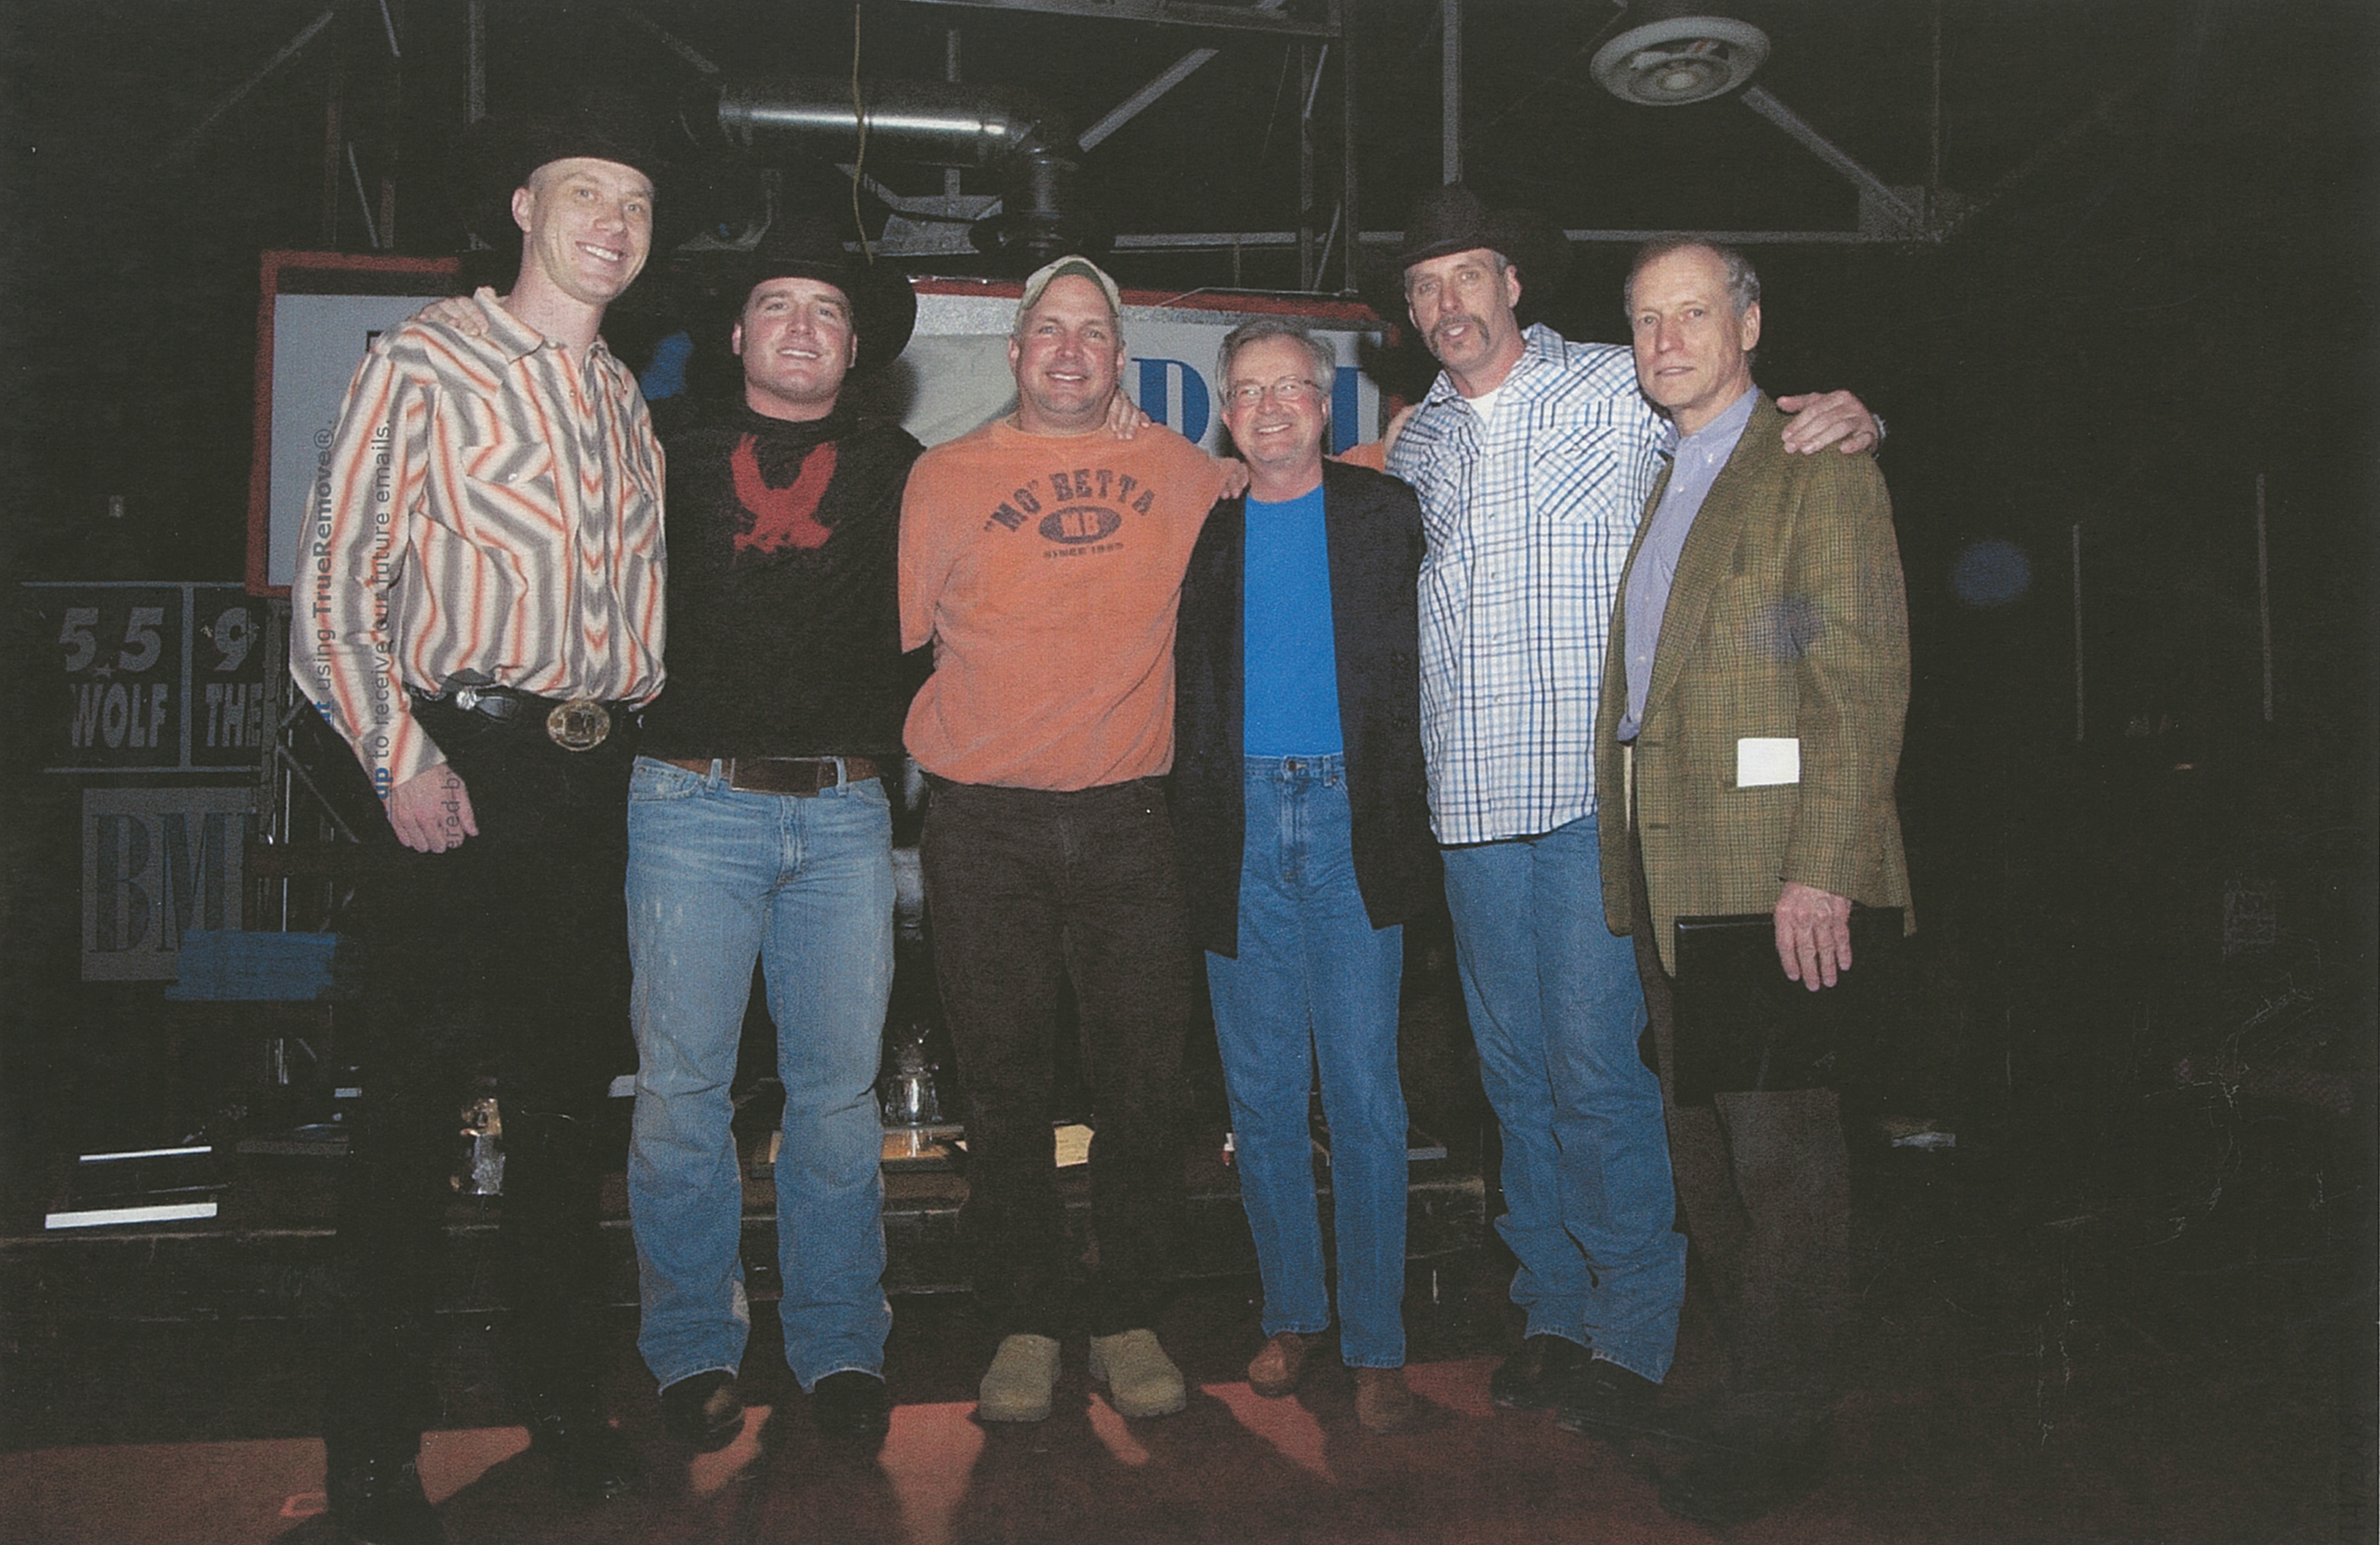 A number one party for Good Ride Cowboy with Garth Brooks, Bob Doyle, and the songwriters and publisher.